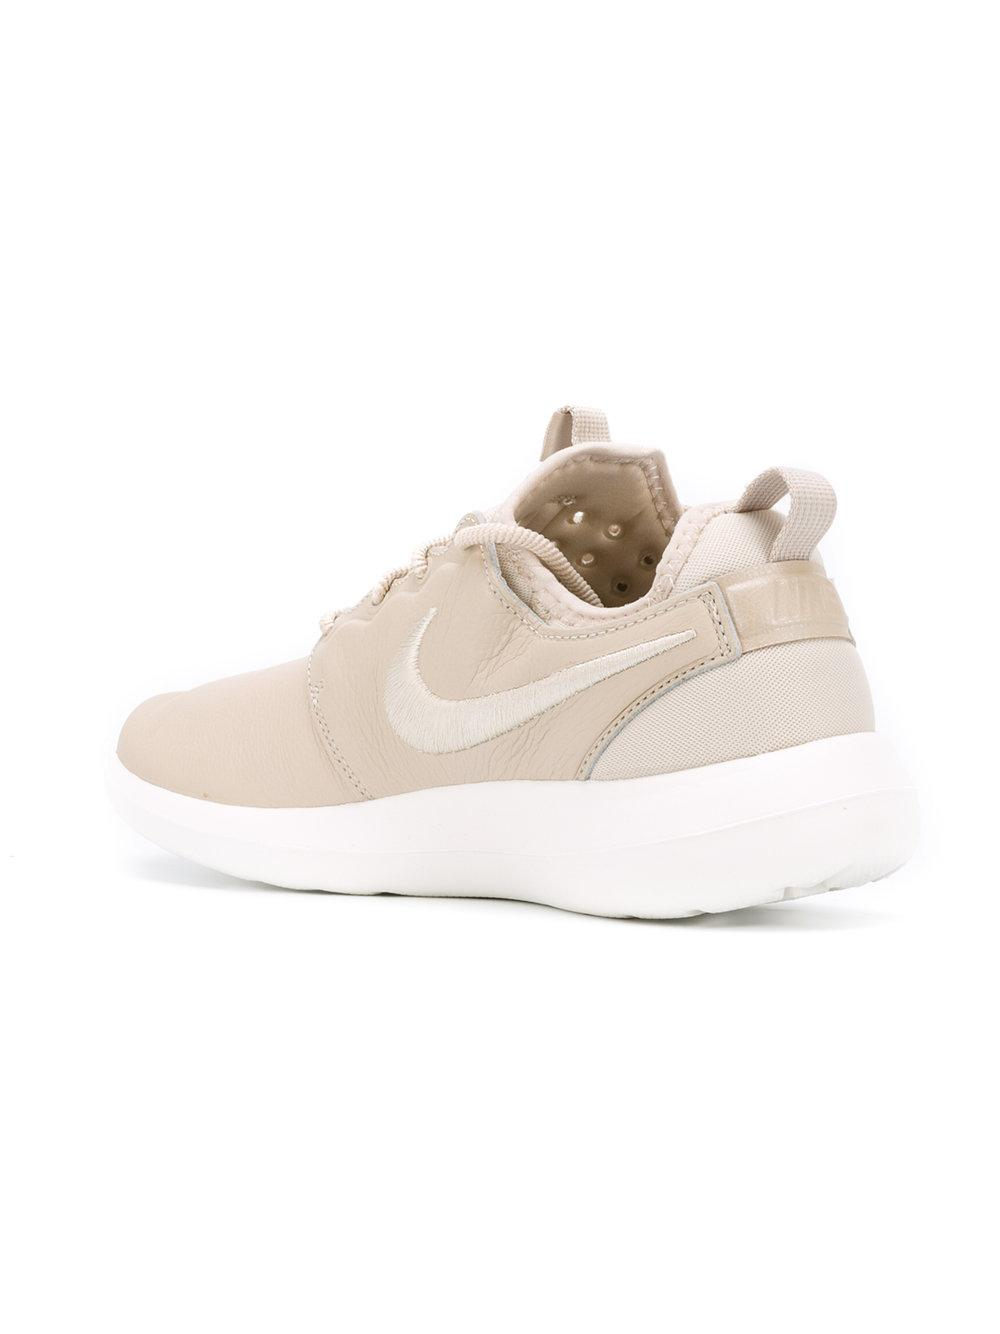 Nike Leather Roshe Two Si Sneakers in Natural